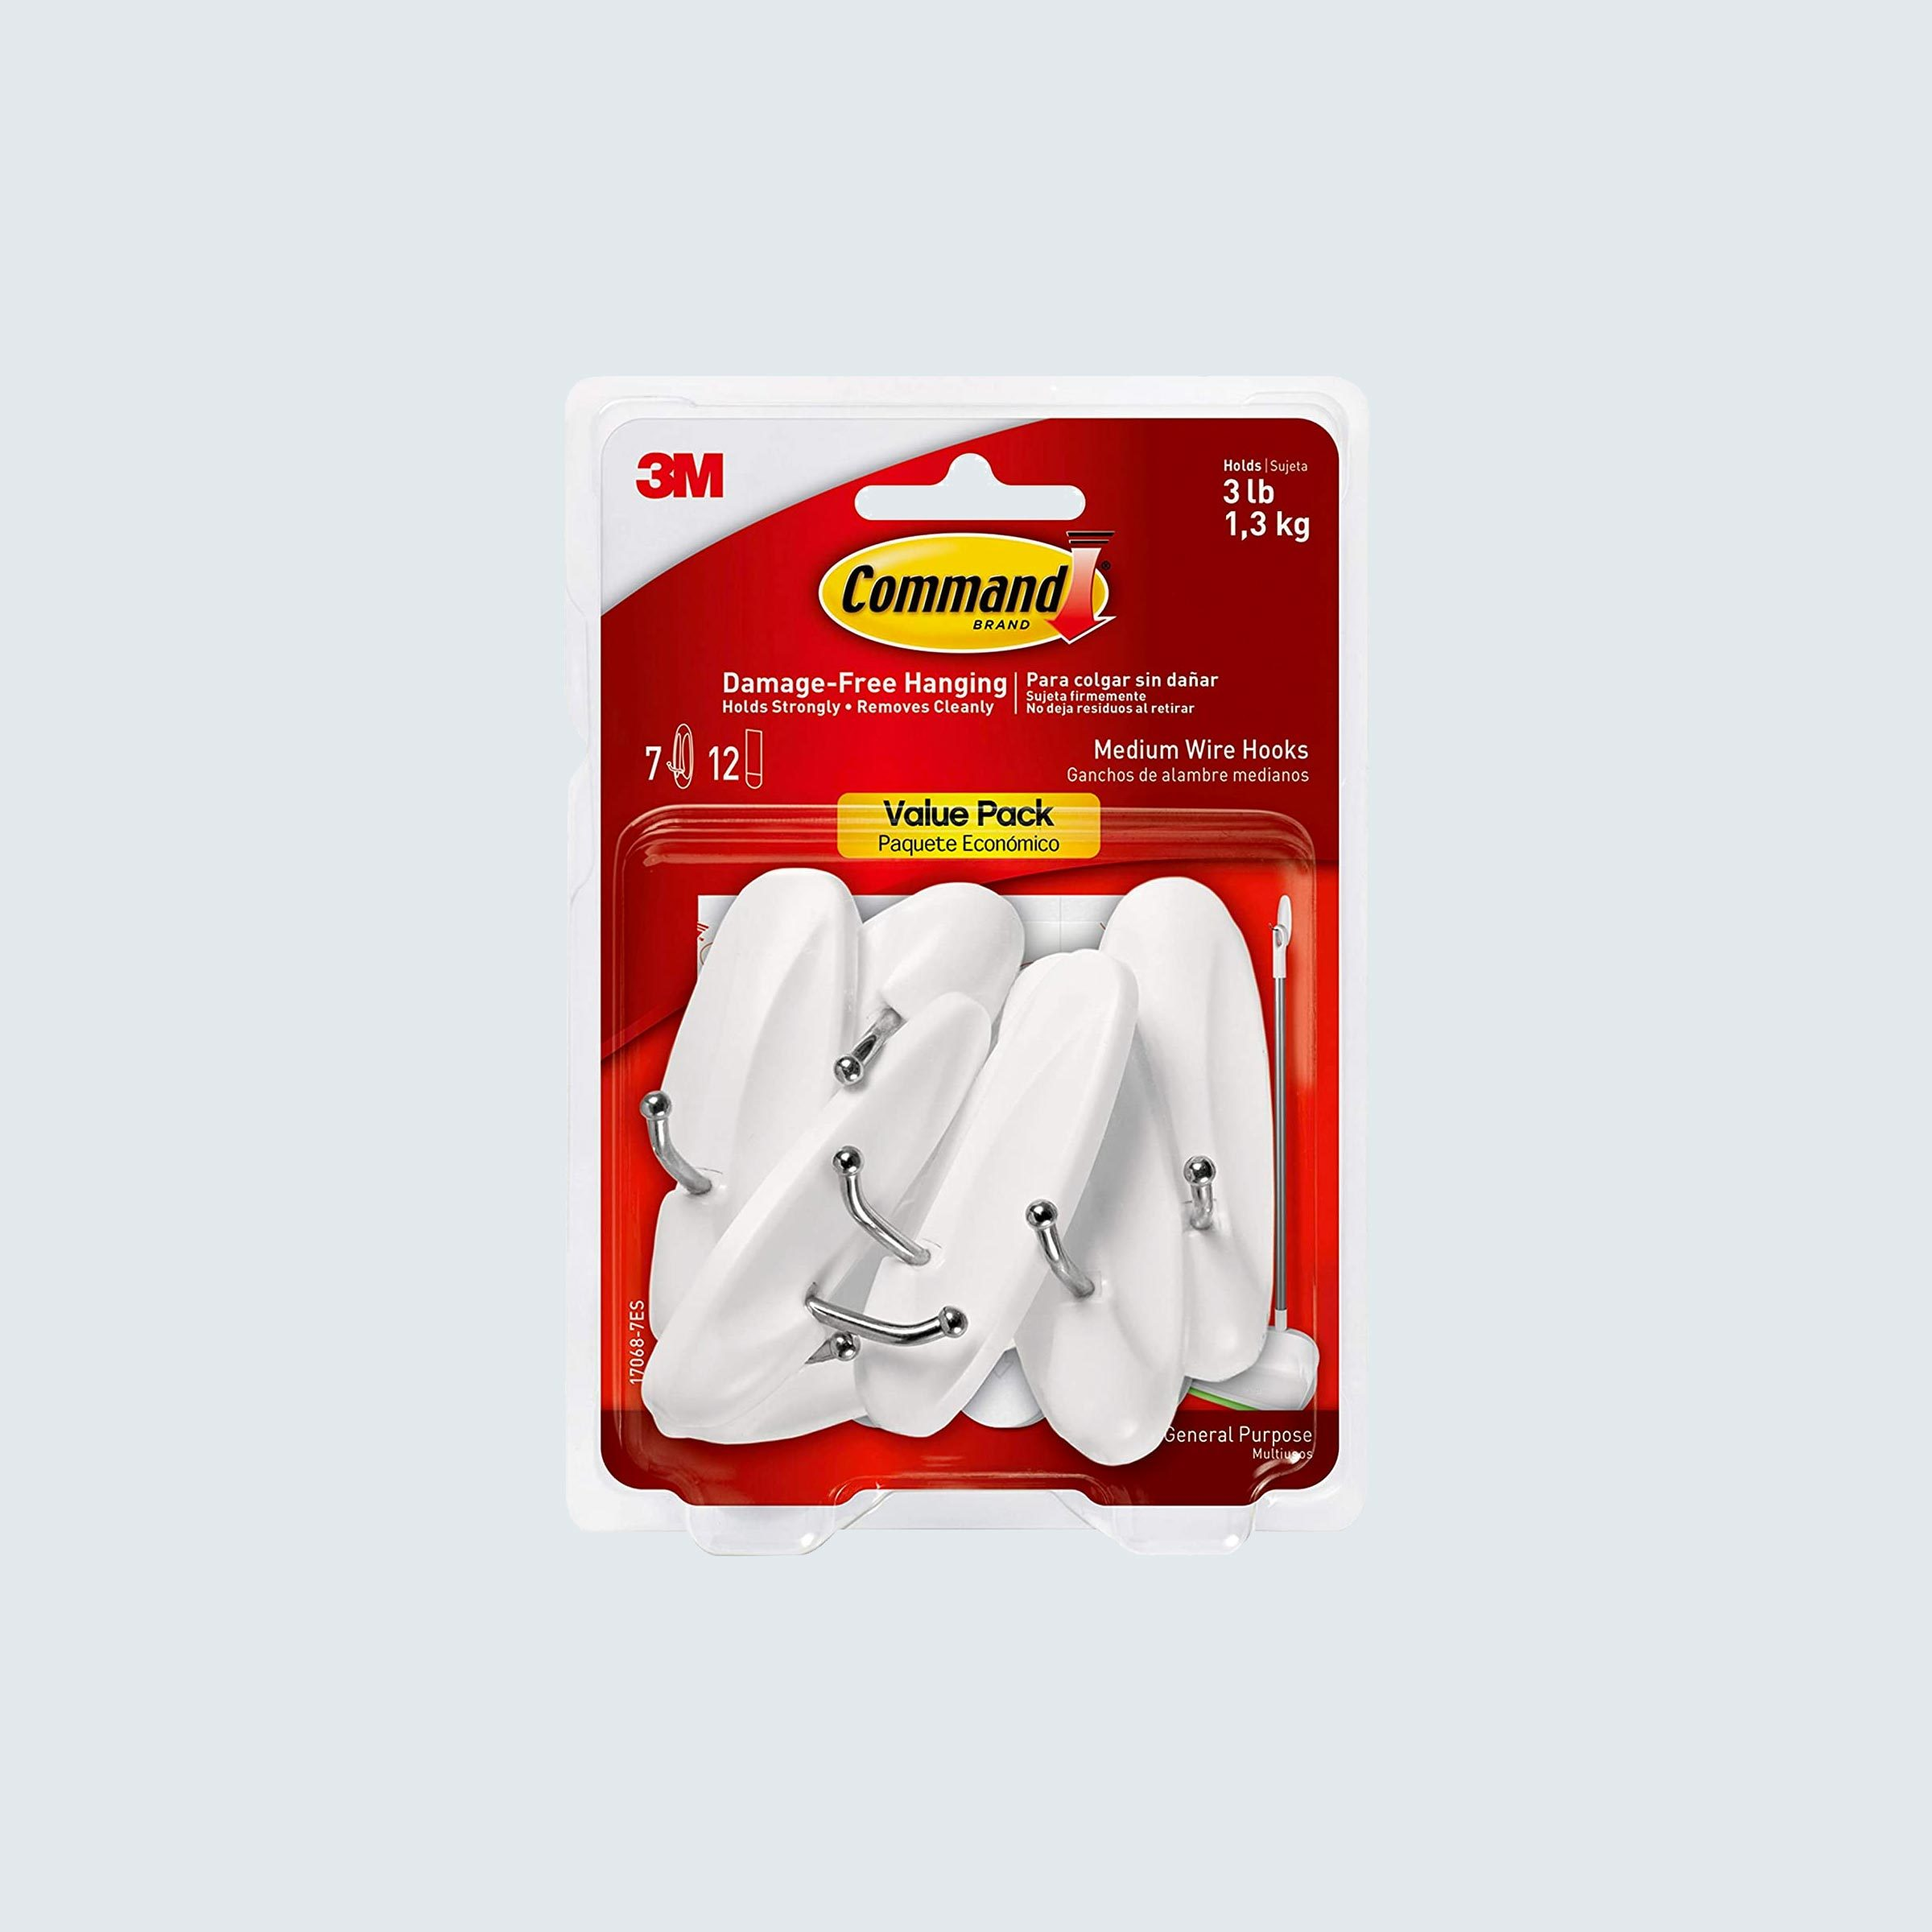 3M Command Wire Hooks